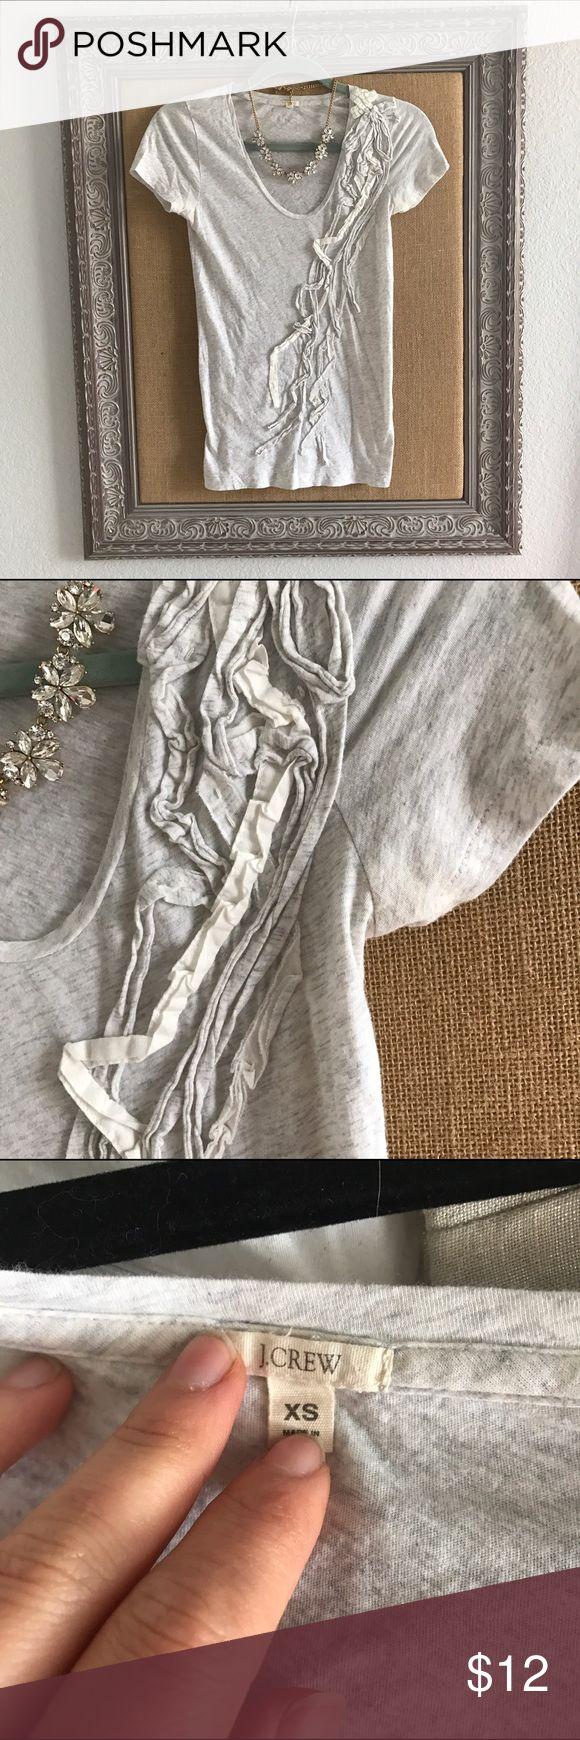 💐 J Crew Heathered Gray Ribbon Detail Tee XS Adorable tee shirt, perfect to wear casually with jeans or dress up for work. Ribbon detail down front, great neutral color and so soft! Bundle to save 20% 💕 J. Crew Tops Tees - Short Sleeve